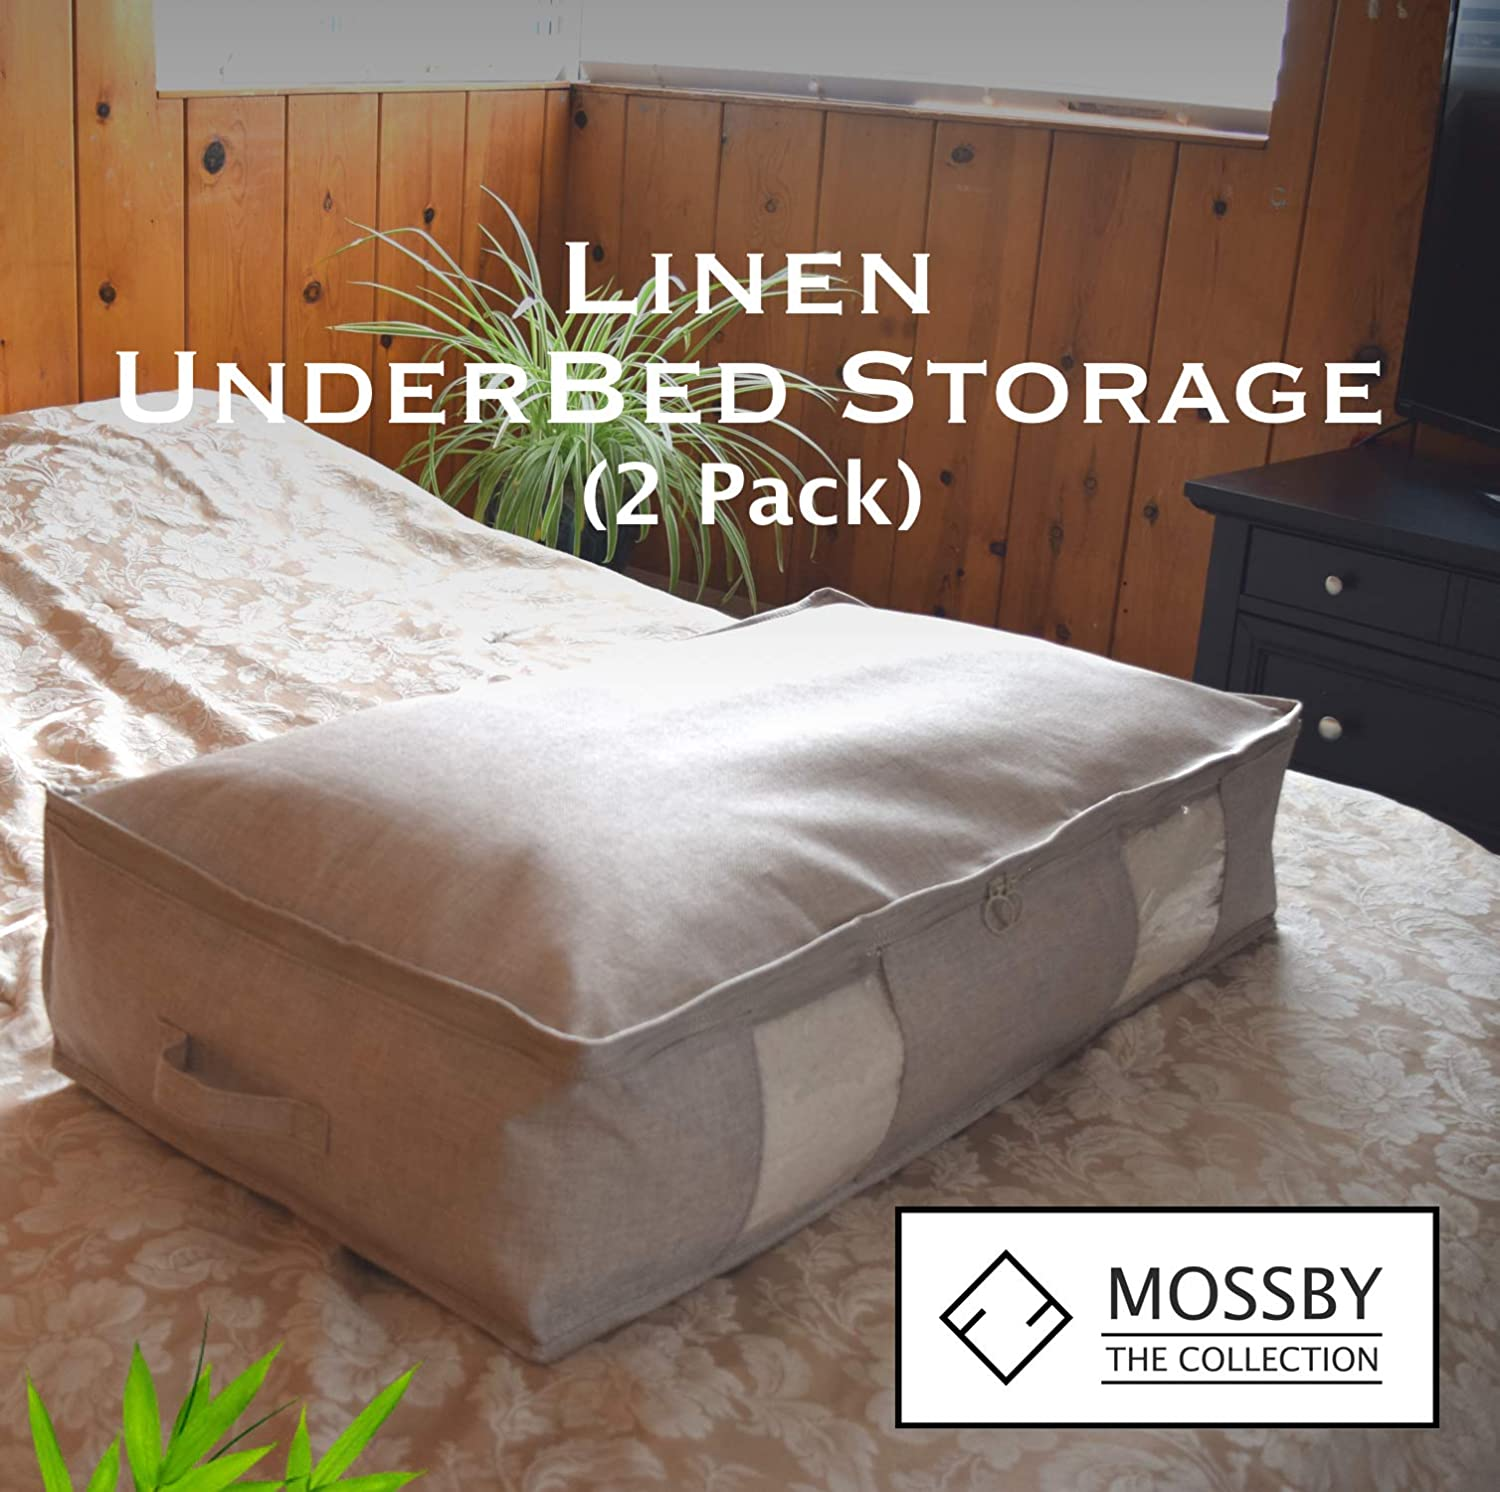 2 Pack Under Bed Storage Containers Breathable Large Foldable Bags with Two Clear Windows and Strong Large Zippers The Mossby Collection Under Bed Storage Clothes Storage